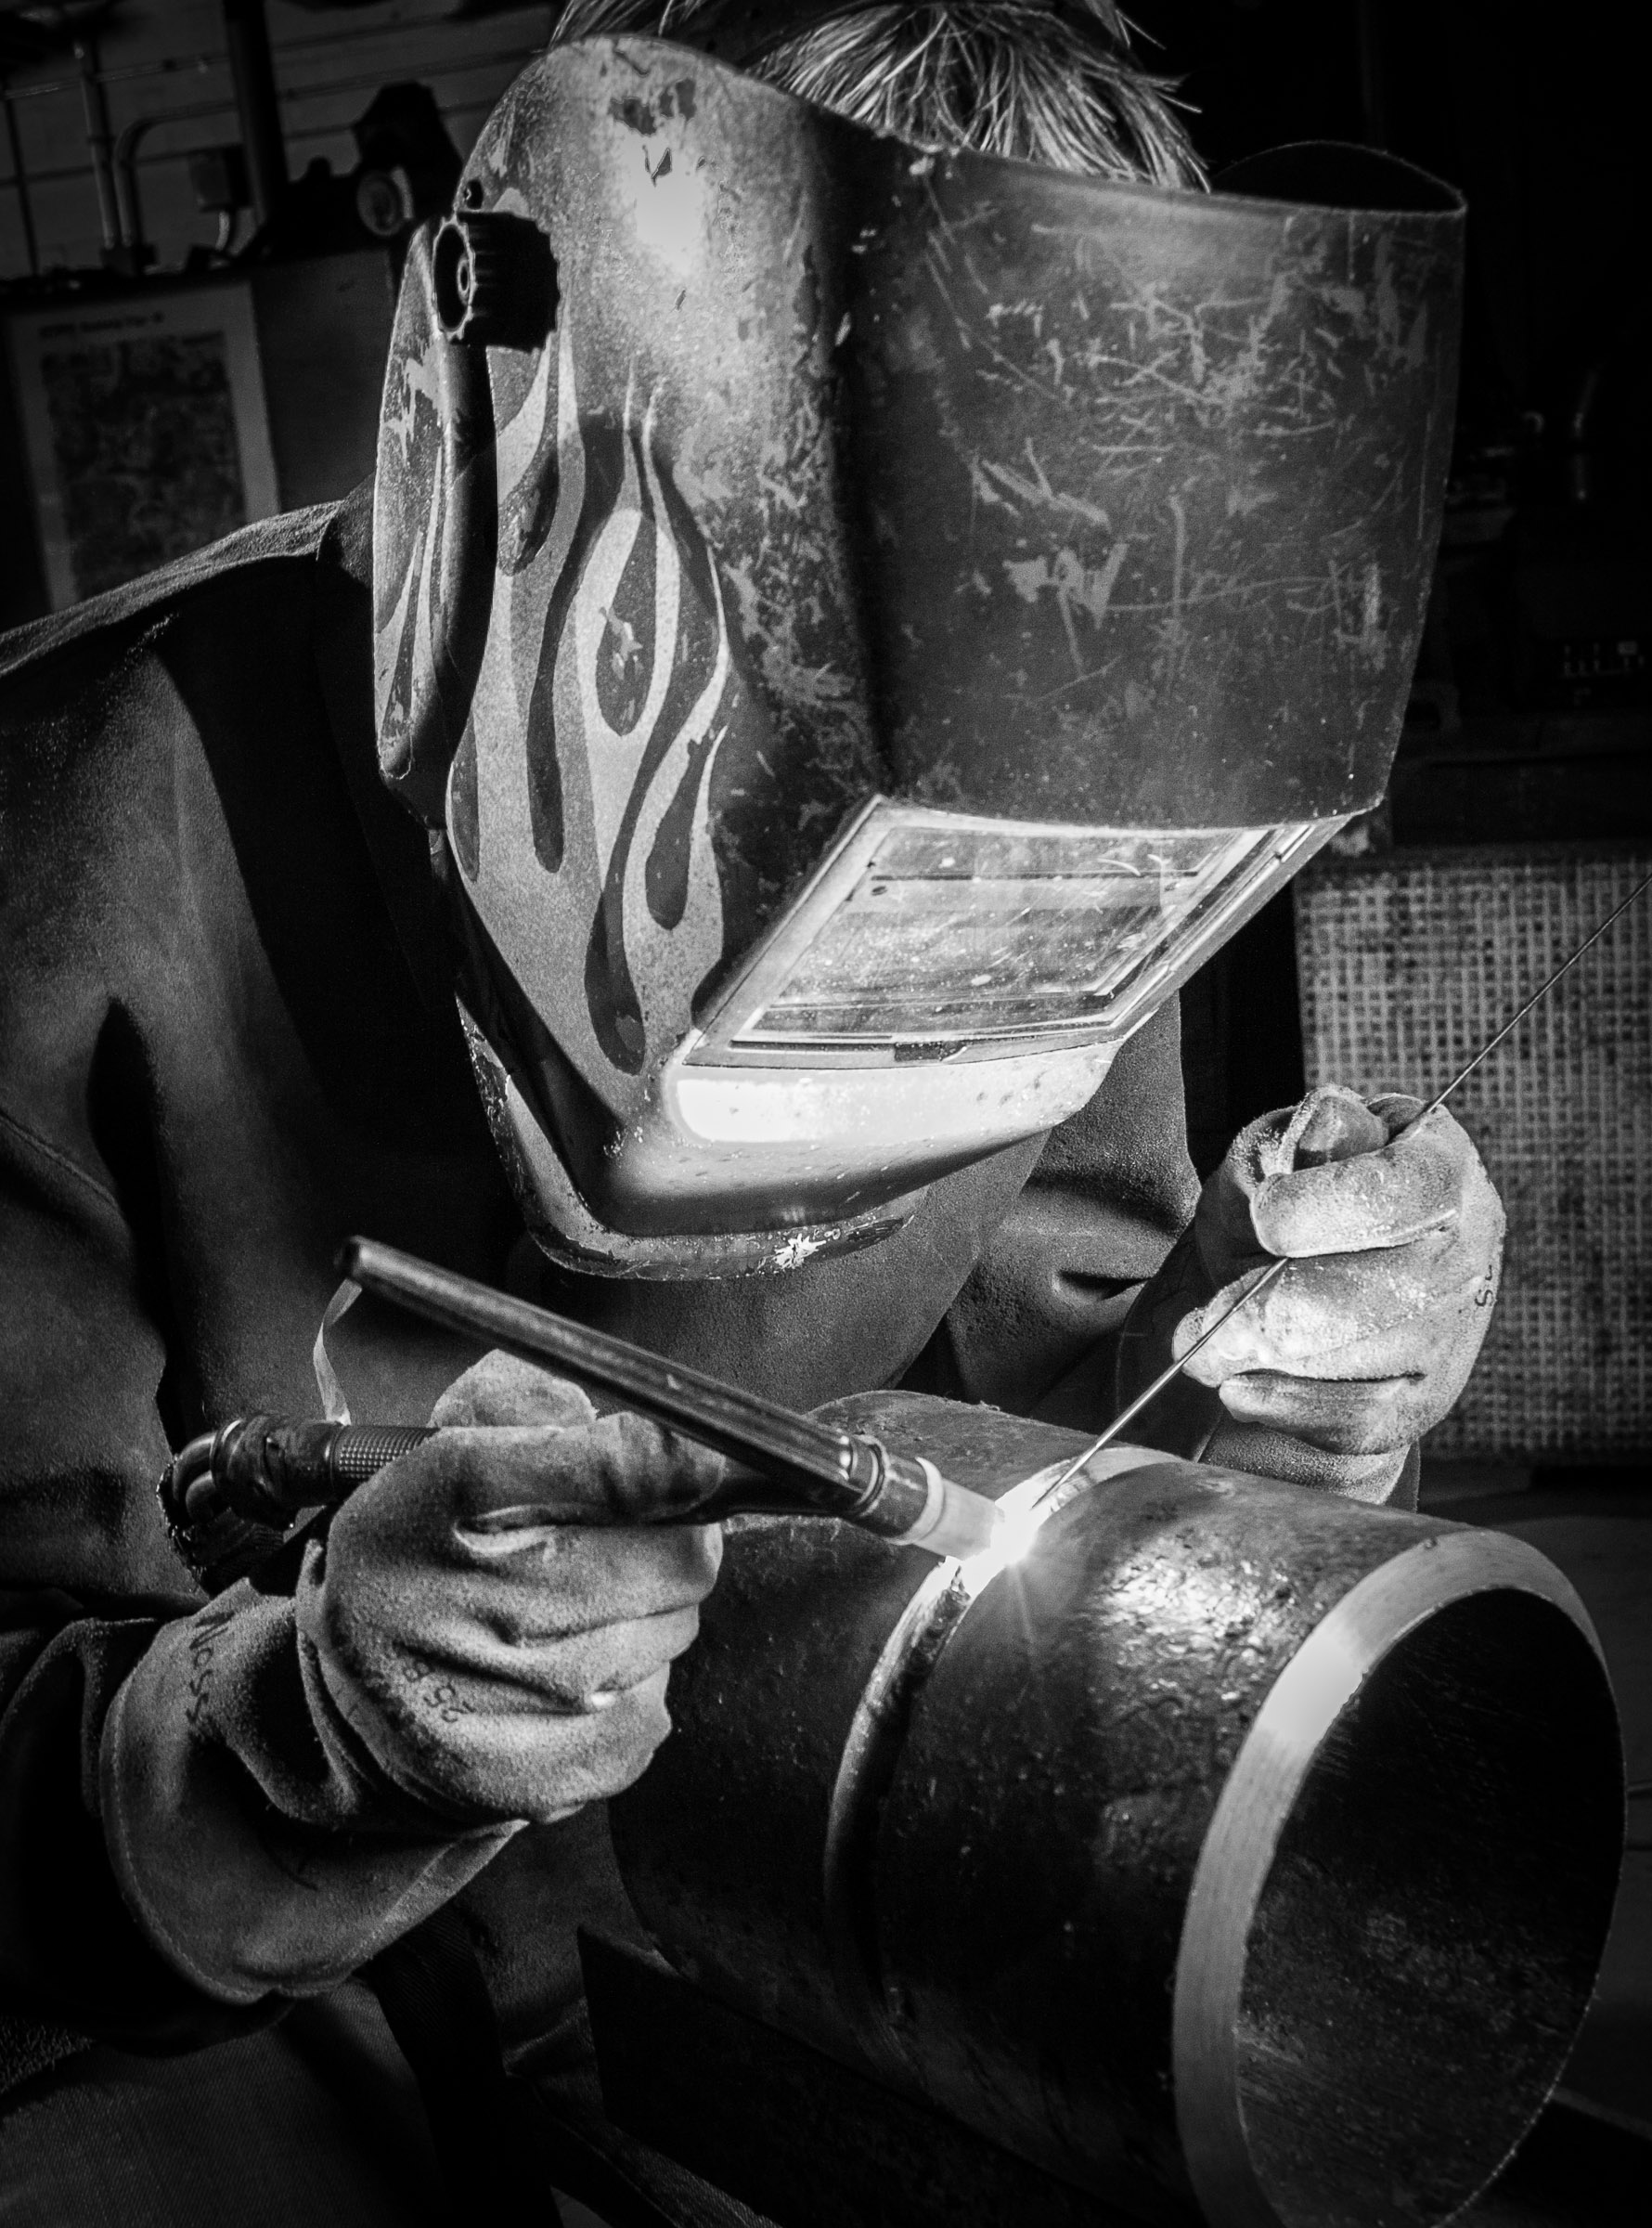 Black and white photo of a commercial welder working on pipe made at factory location